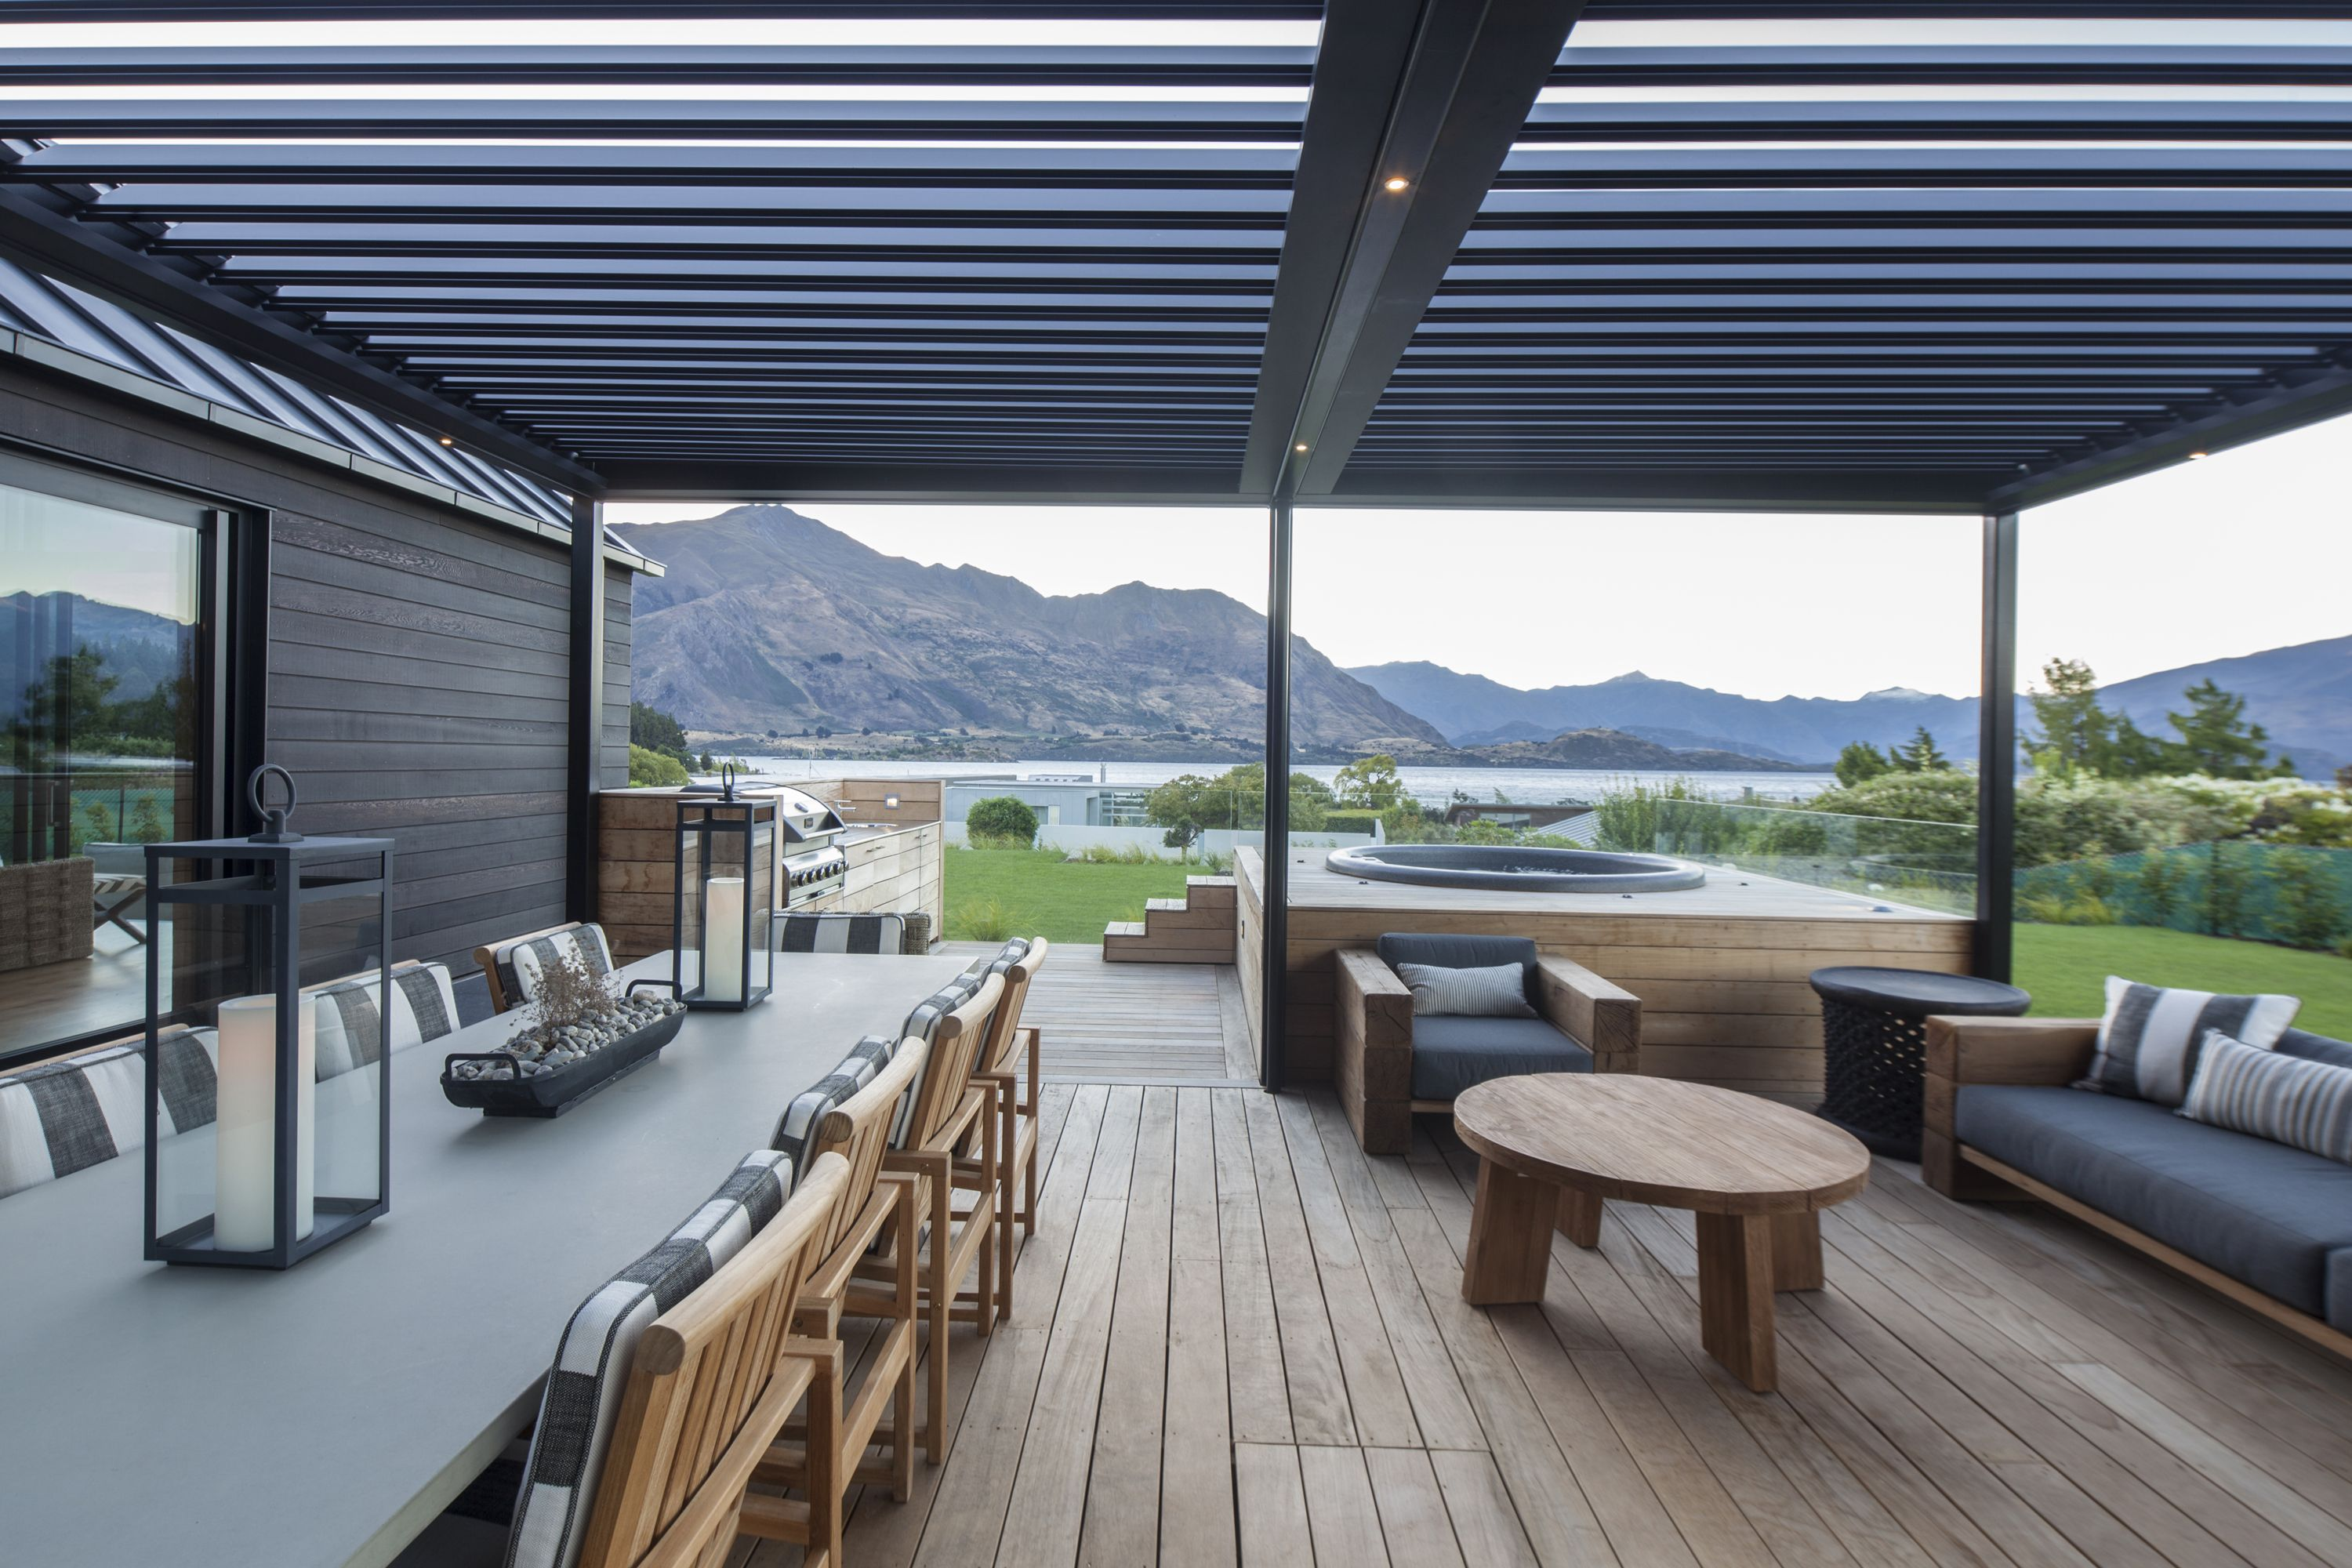 New Zealand Architecture - Outdoor Living: Warren ... on Warrens Outdoor Living id=46718